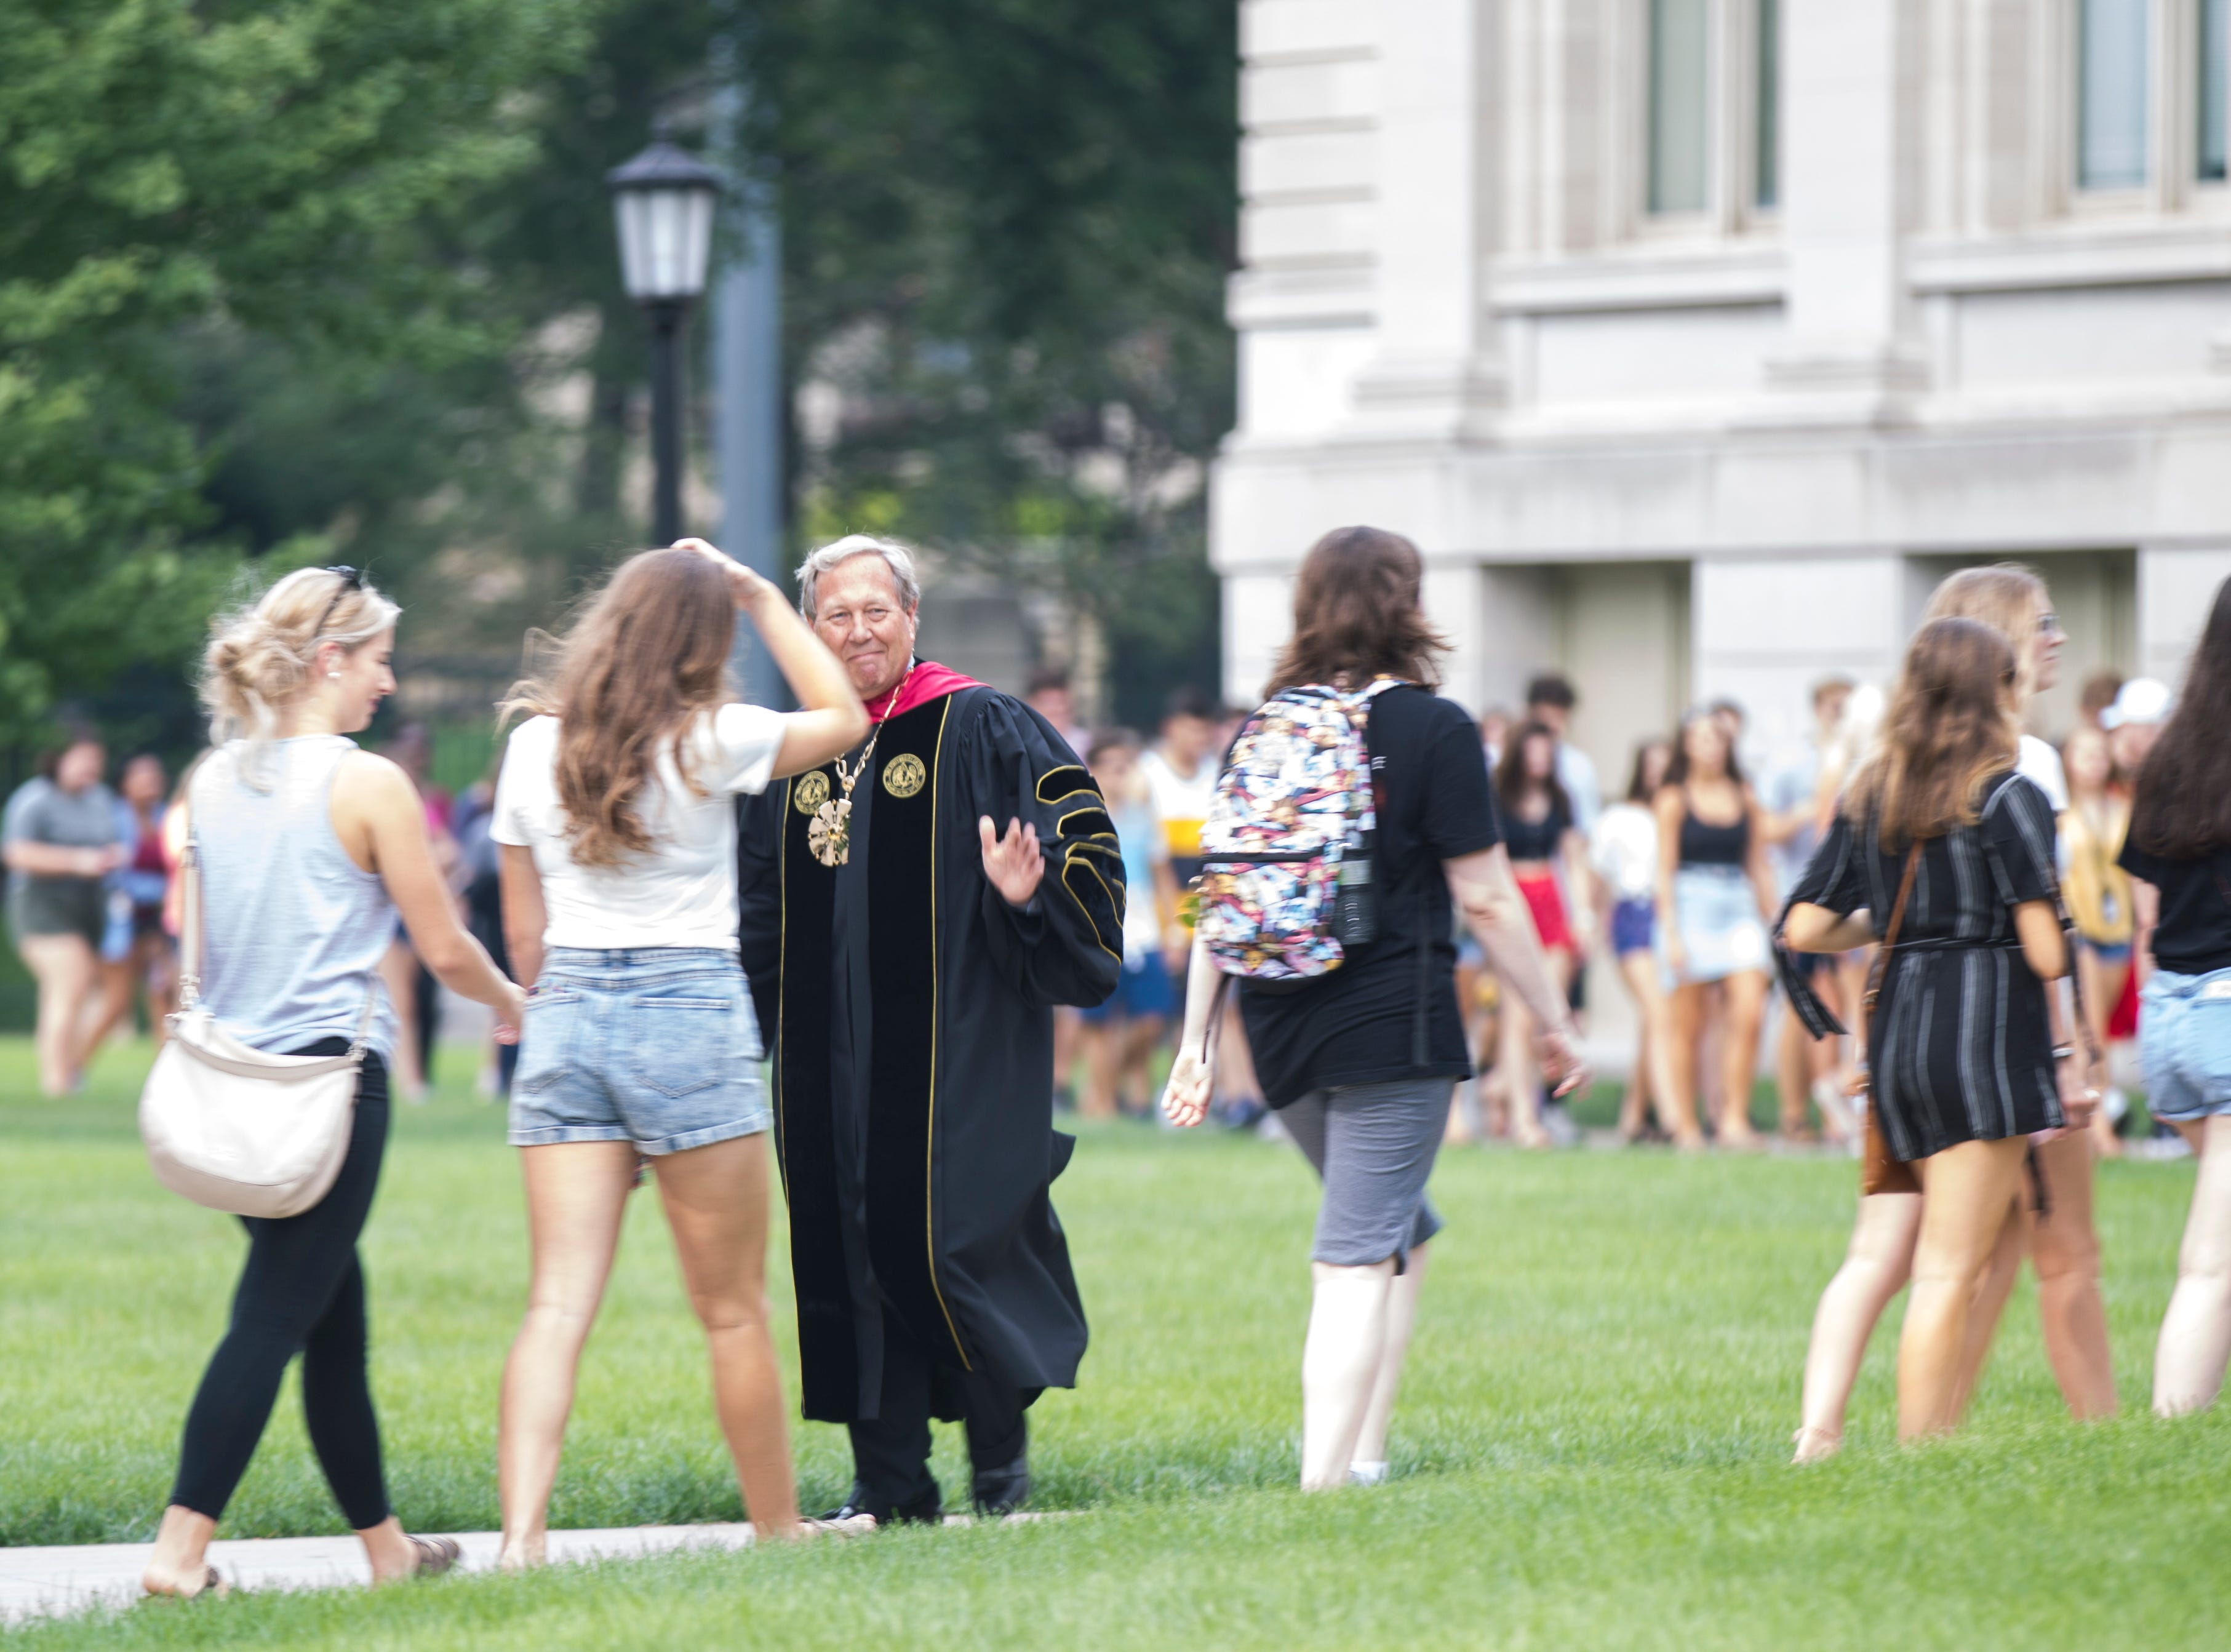 University of Iowa President J. Bruce Harreld waves to students during the University of Iowa class of 2022 convocation on Sunday, Aug. 19, 2018, at the Pentacrest in Iowa City.